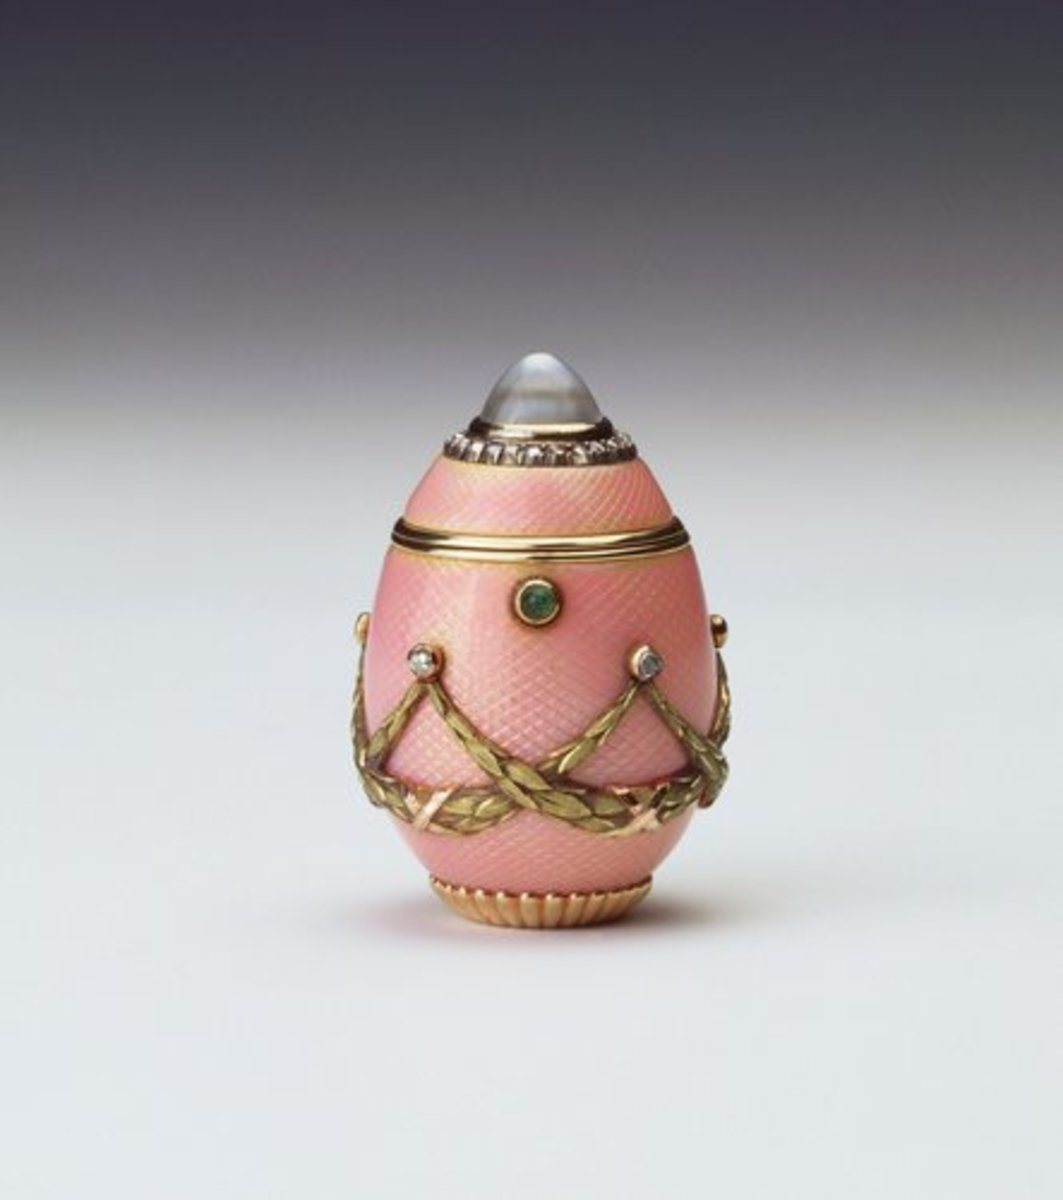 """This egg-shaped box of two-color gold and pink guilloché enamel was made by Carl Fabergé, c. 1900; 1-1/2"""" x 1"""". The lid is set with a domed rock crystal with a surround of rose diamonds and the body is hung with crossed yellow gold laurel swags suspended from rose diamonds. The egg has a cabochon emerald thumb piece and a gadrooned base. Fabergé produced boxes, pendants and even cups in the form of eggs and there are numerous examples of these objects in the Royal Collection."""